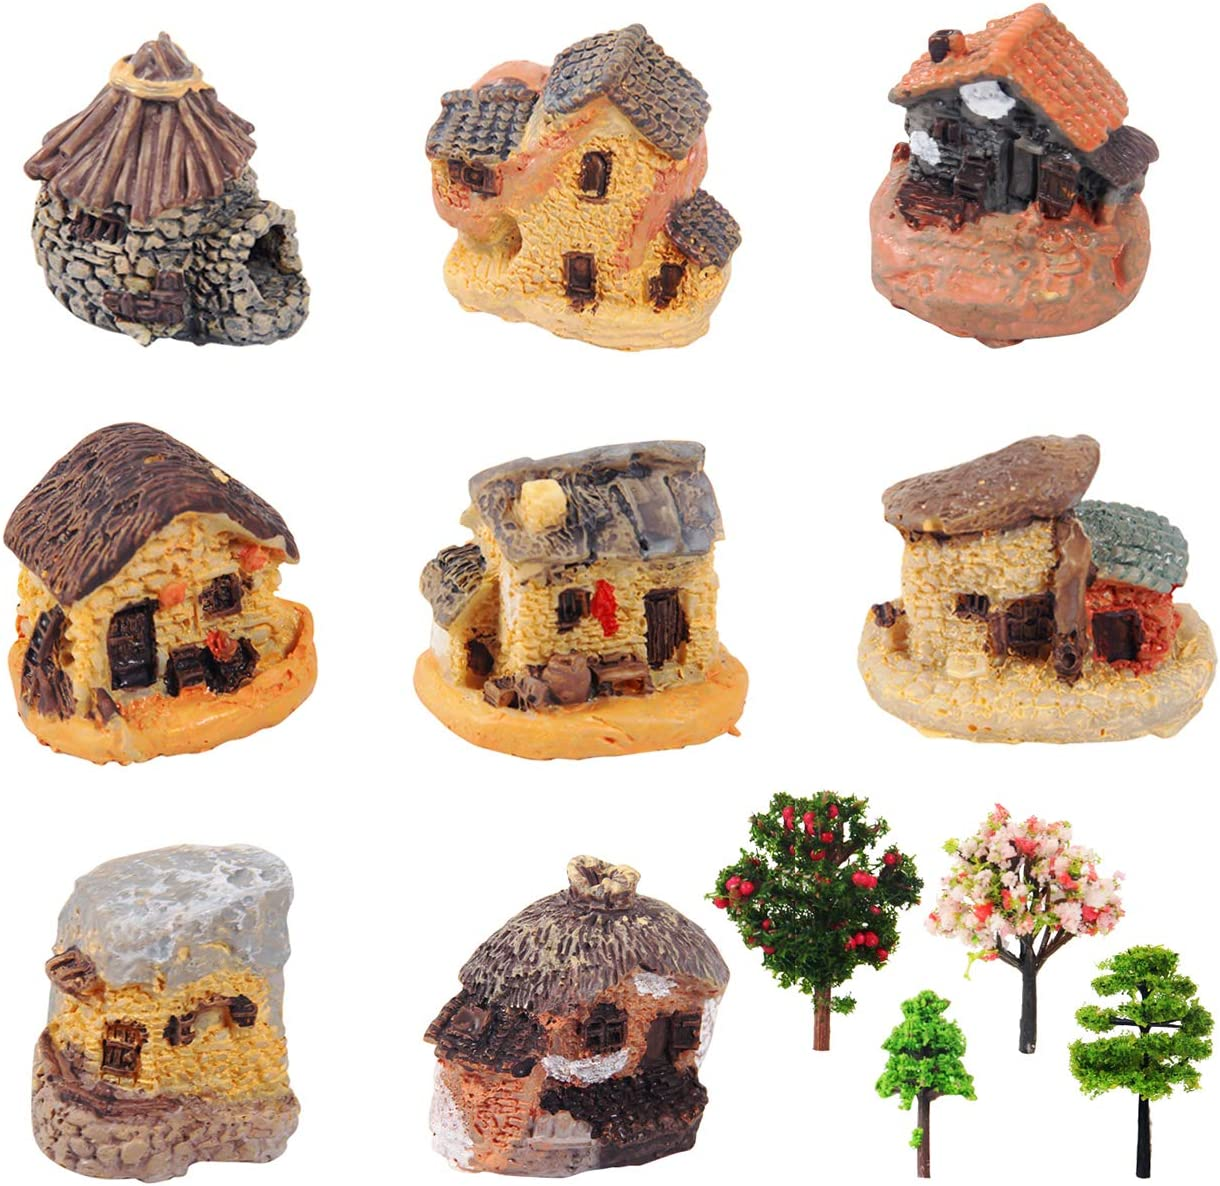 Kbraveo 12pcs Fairy Garden Stone House and Fairy Garden Tree,Fairy Garden Kits Dollhouse Supplies DIY Outdoor Decorations